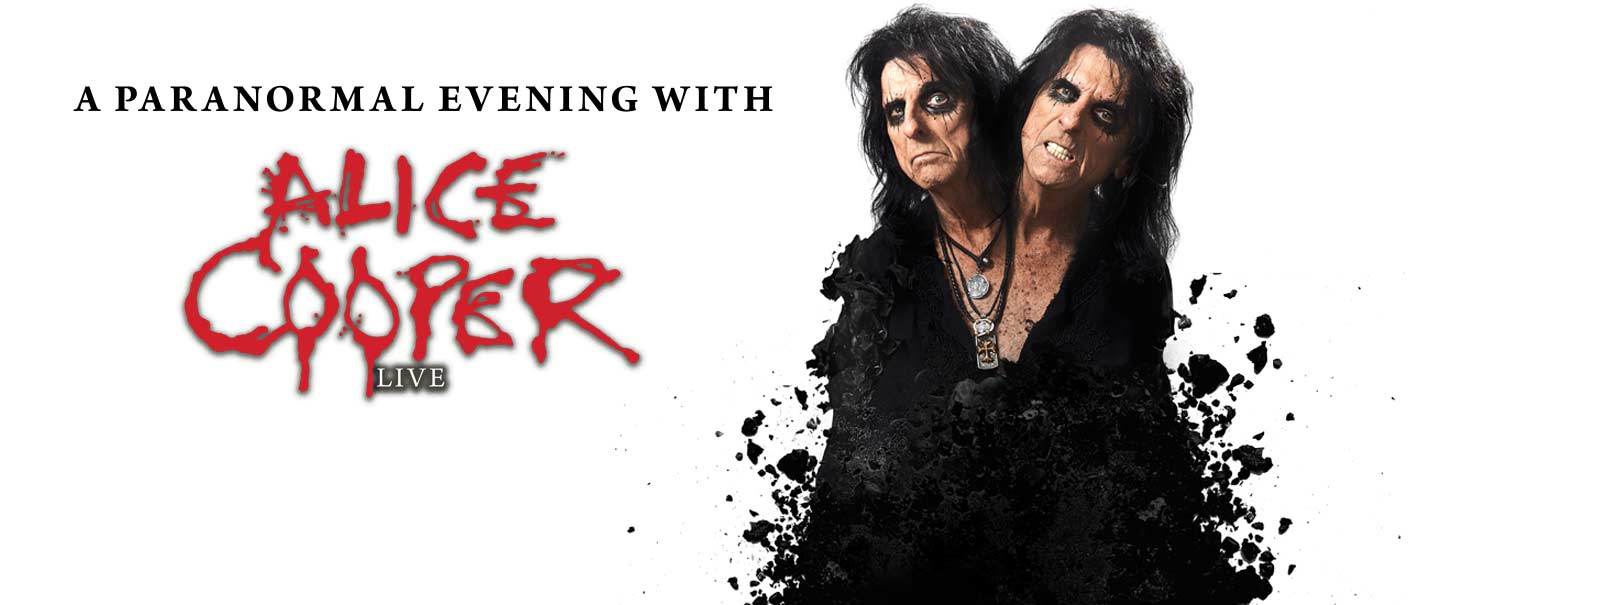 More Info - A Paranormal Evening with Alice Cooper